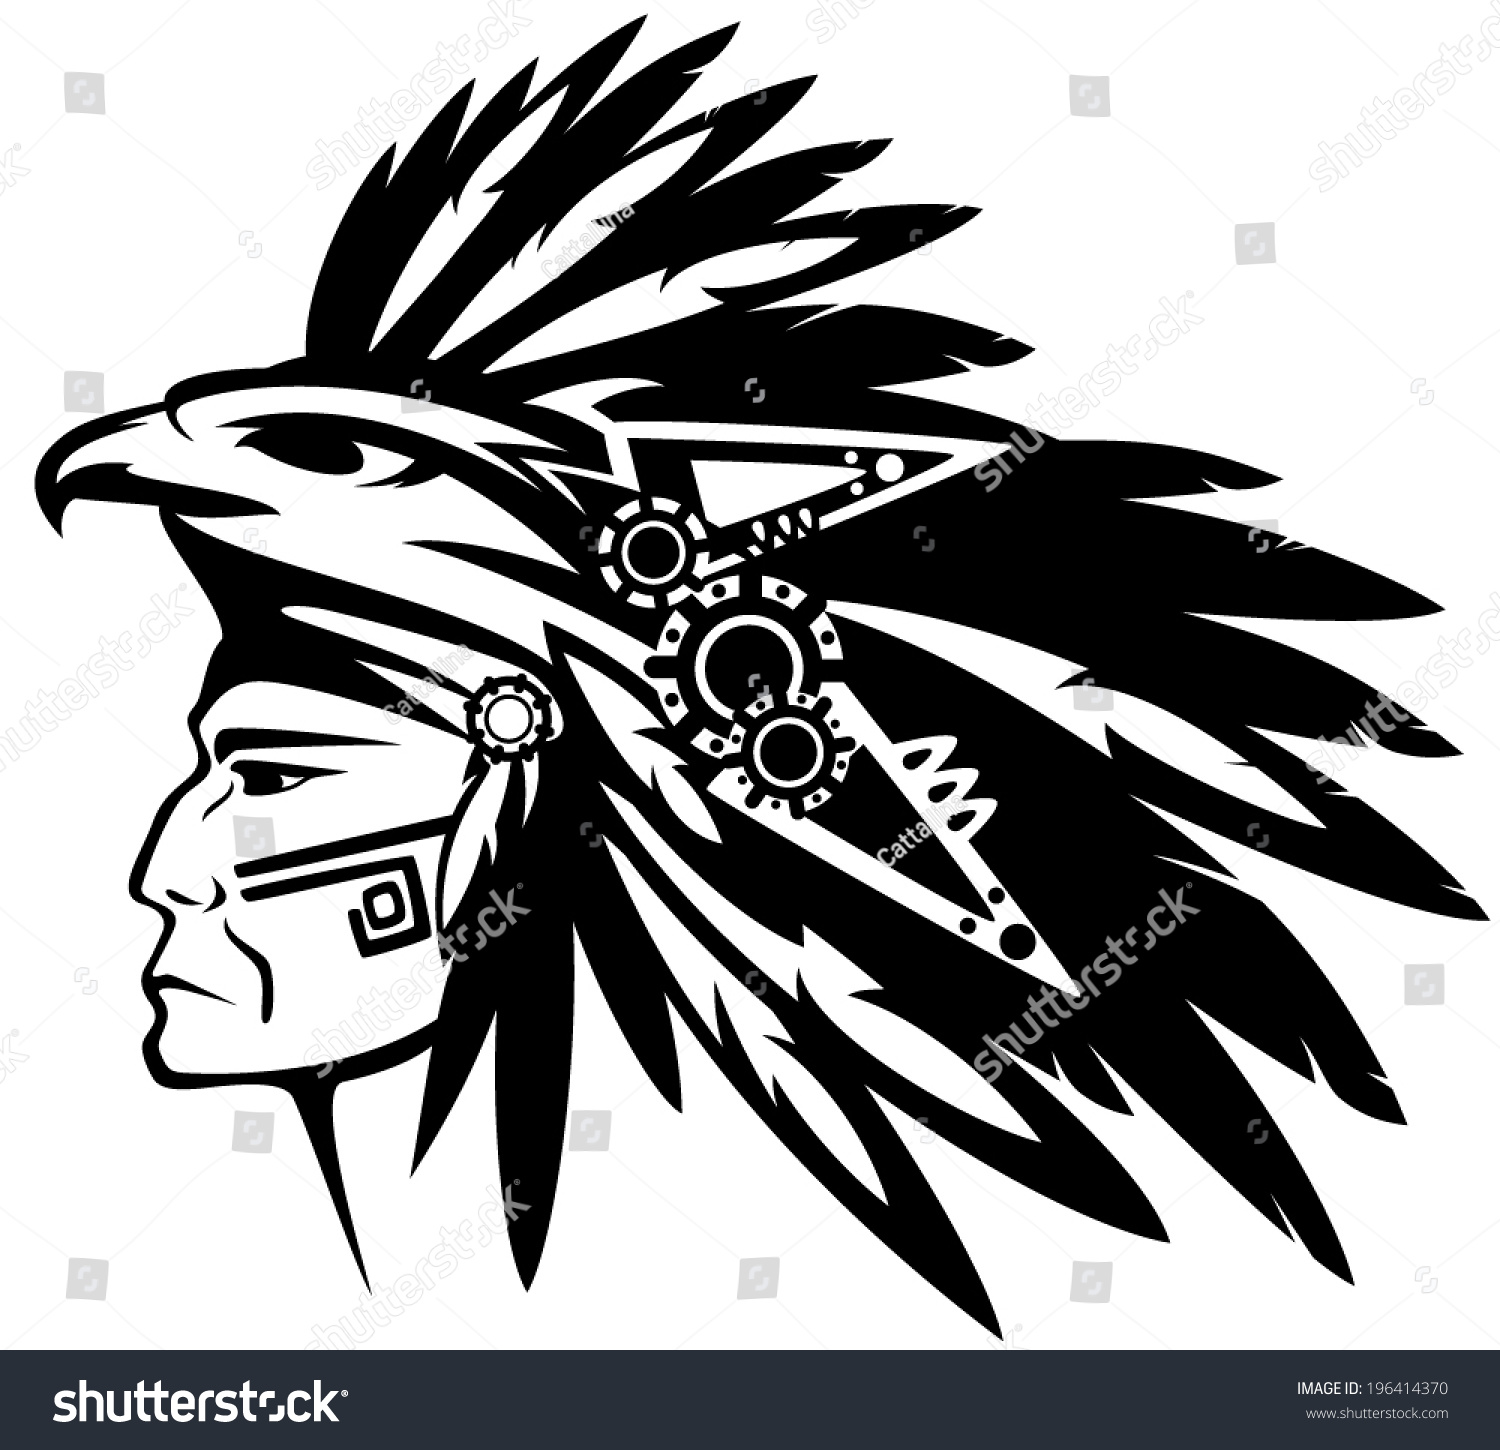 ec2dfc743 Aztec tribe warrior wearing feather headdress with eagle profile head -  black and white vector outline